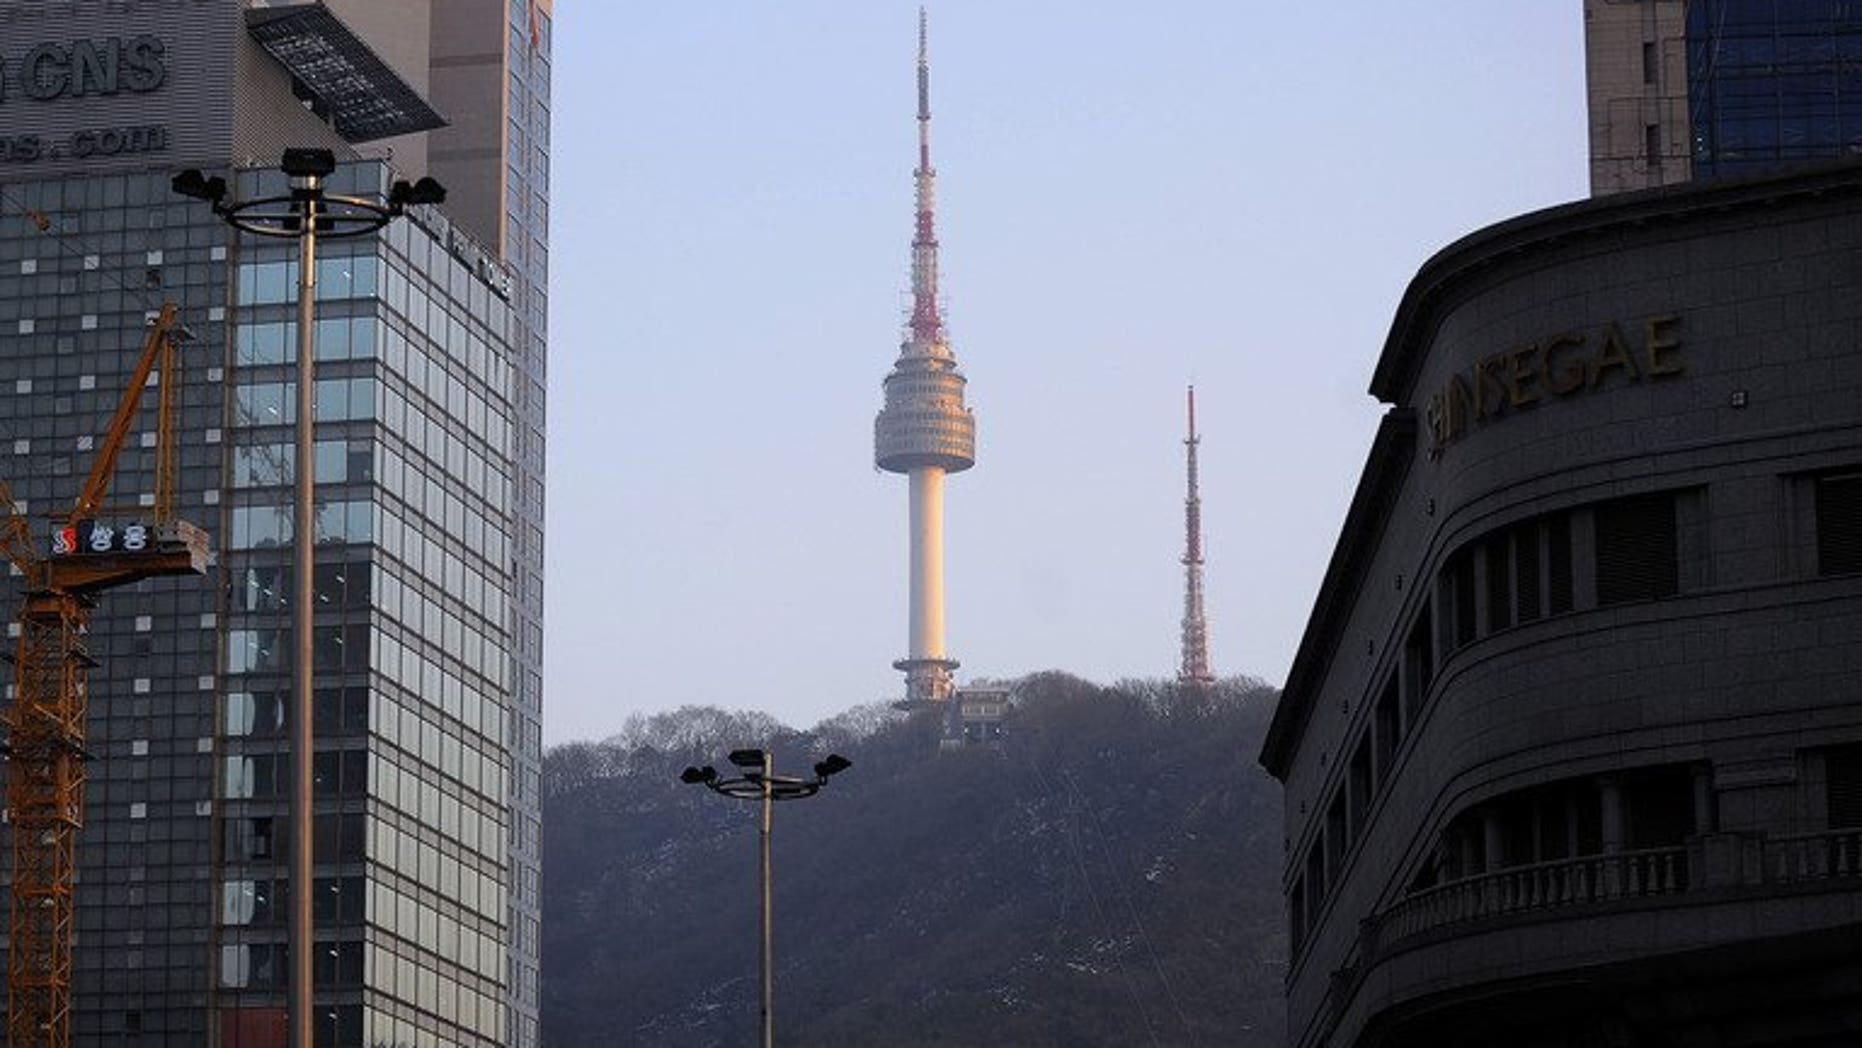 The N Seoul Tower is seen on the top of Nam mountain, on February 22, 2010. South Korea issued a cyber attack alert on Tuesday after hackers apparently penetrated a number of official websites, including the presidential Blue House, according to the science ministry.